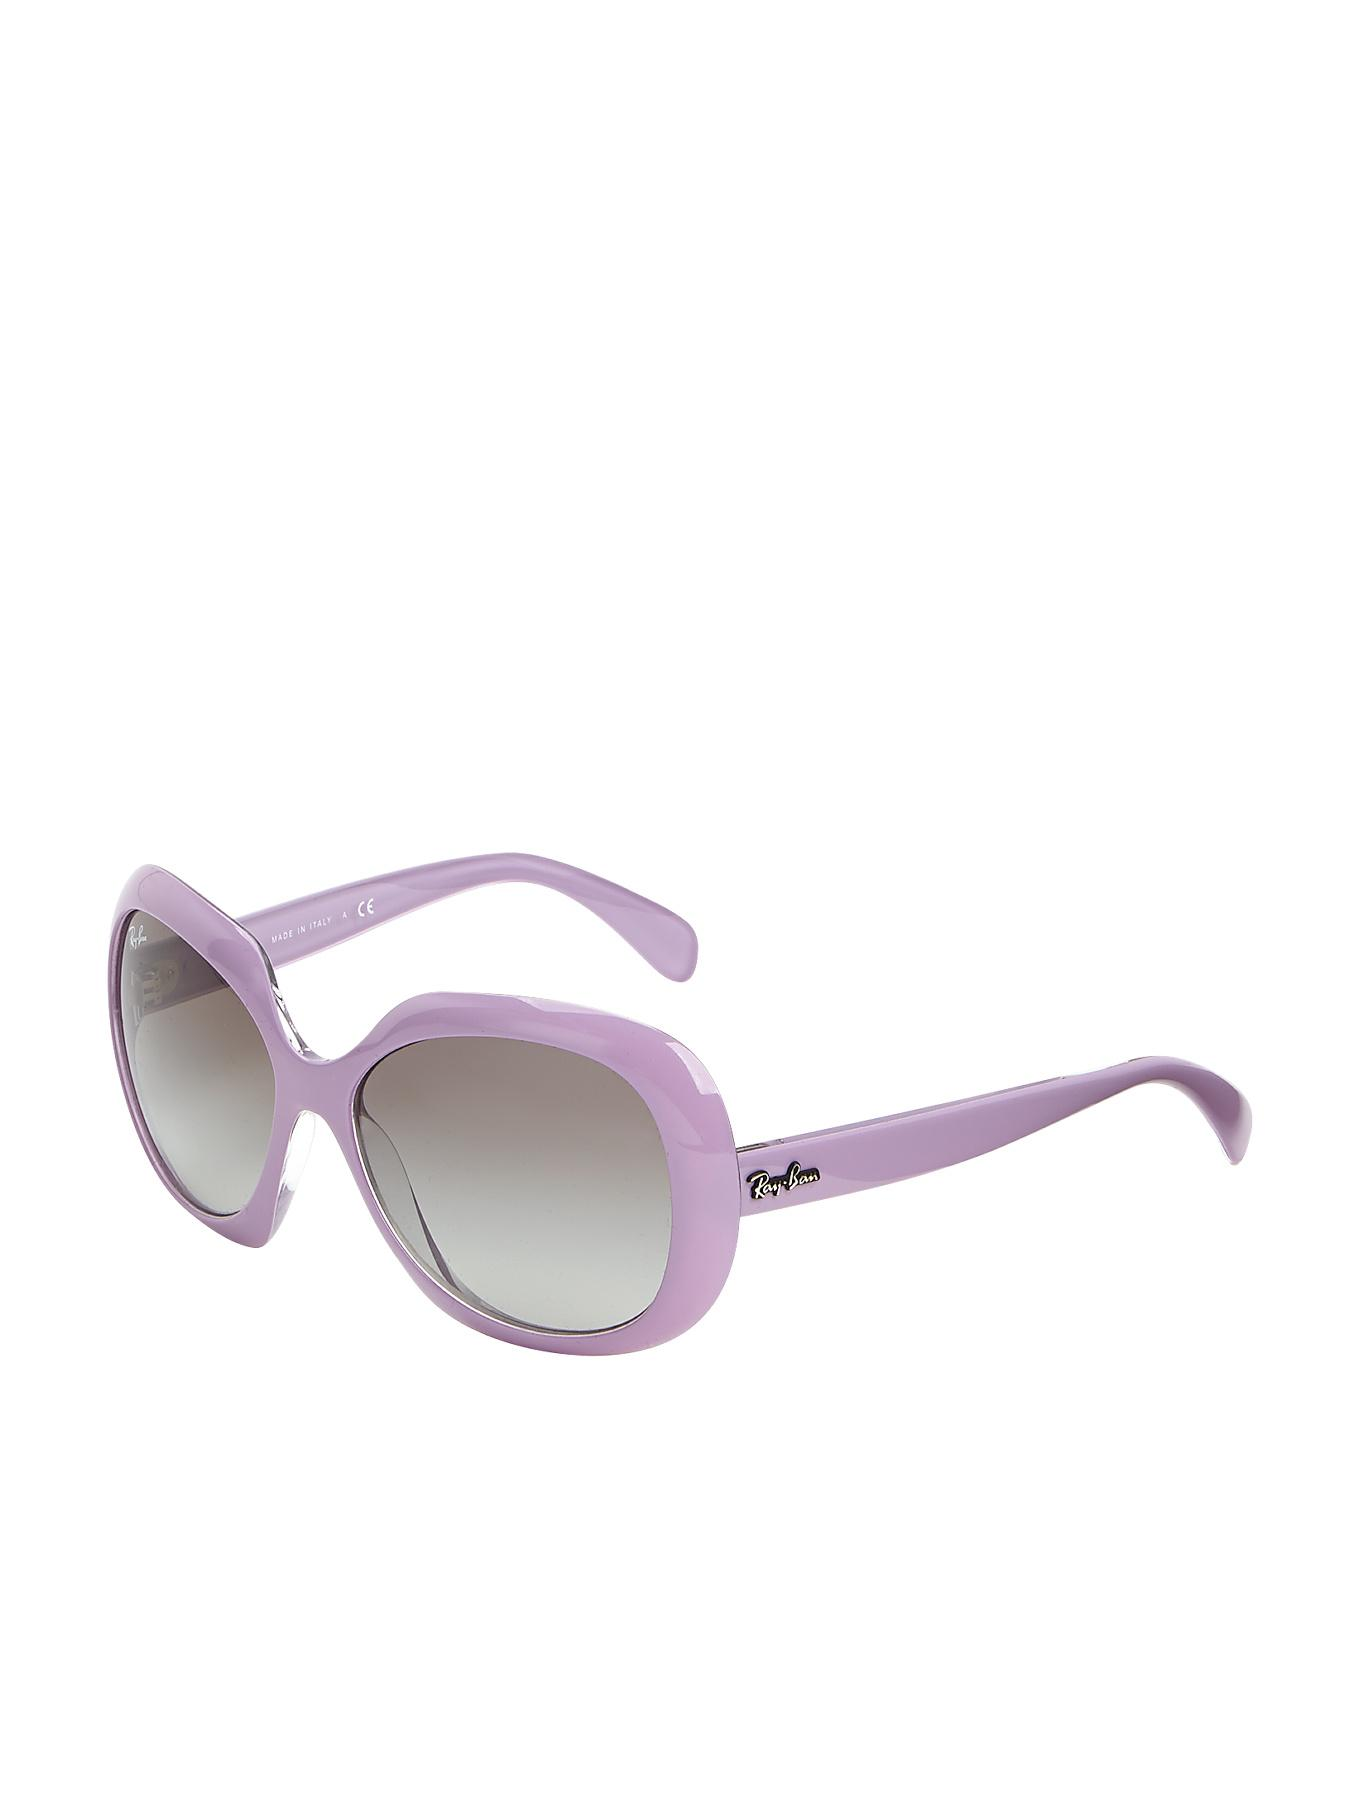 Ray-Ban Oversized Sunglasses - Pink, Pink